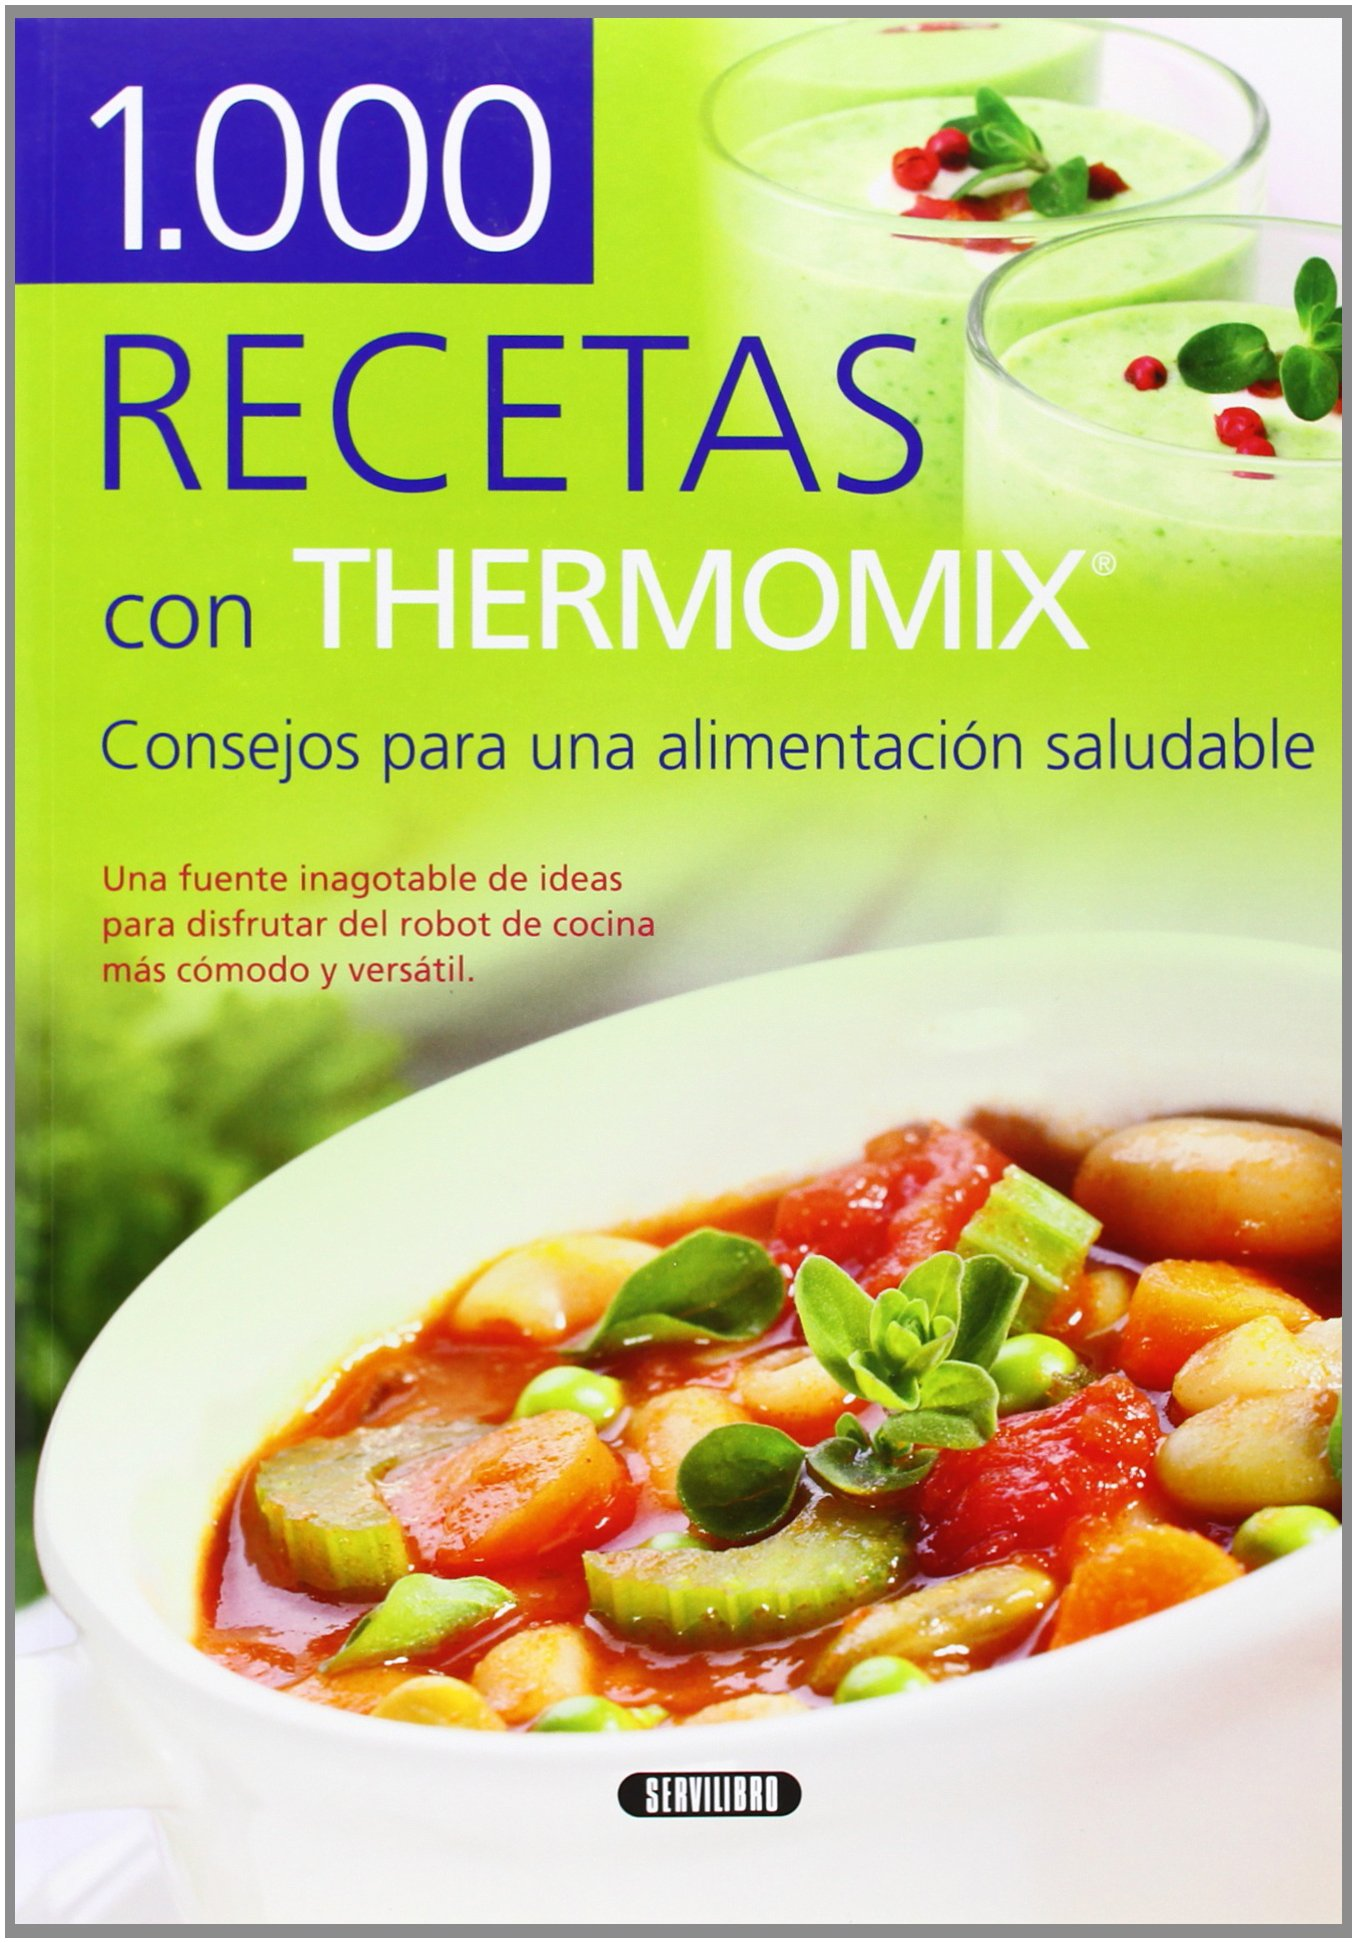 1000 recetas con Thermomix: Amazon.es: Libros